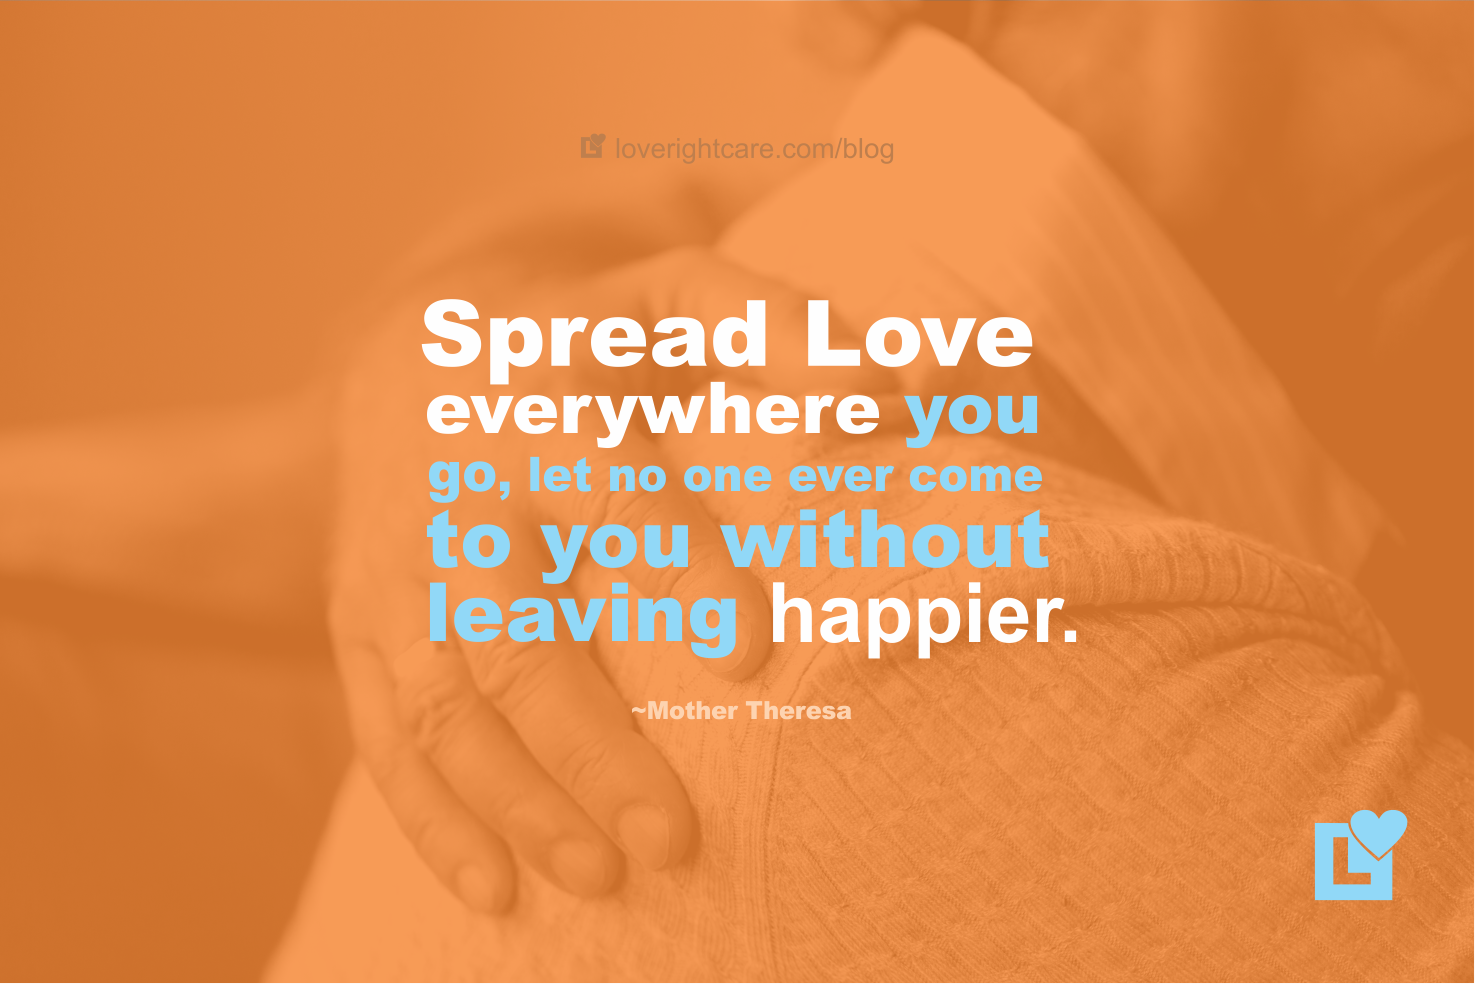 spread love everywhere you go meaning in hindi